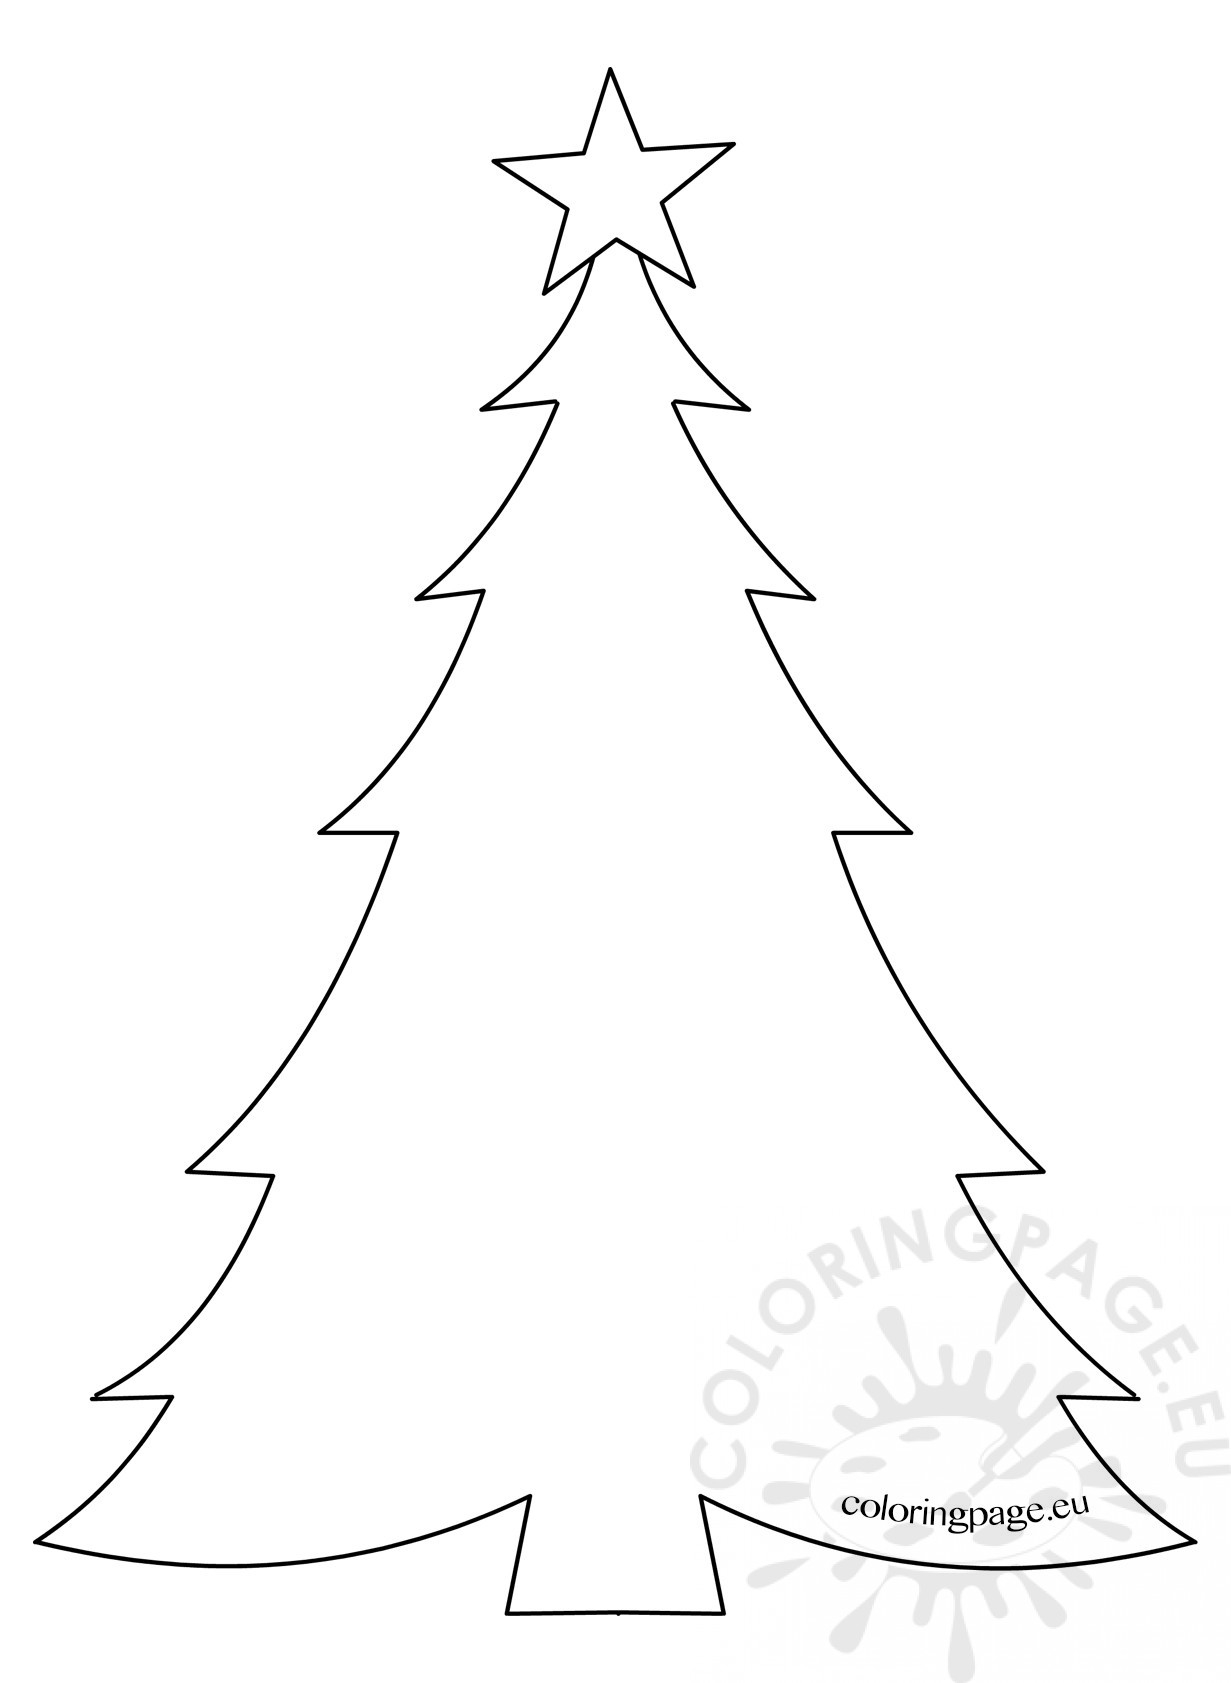 This is a graphic of Modest Printable Christmas Tree Template